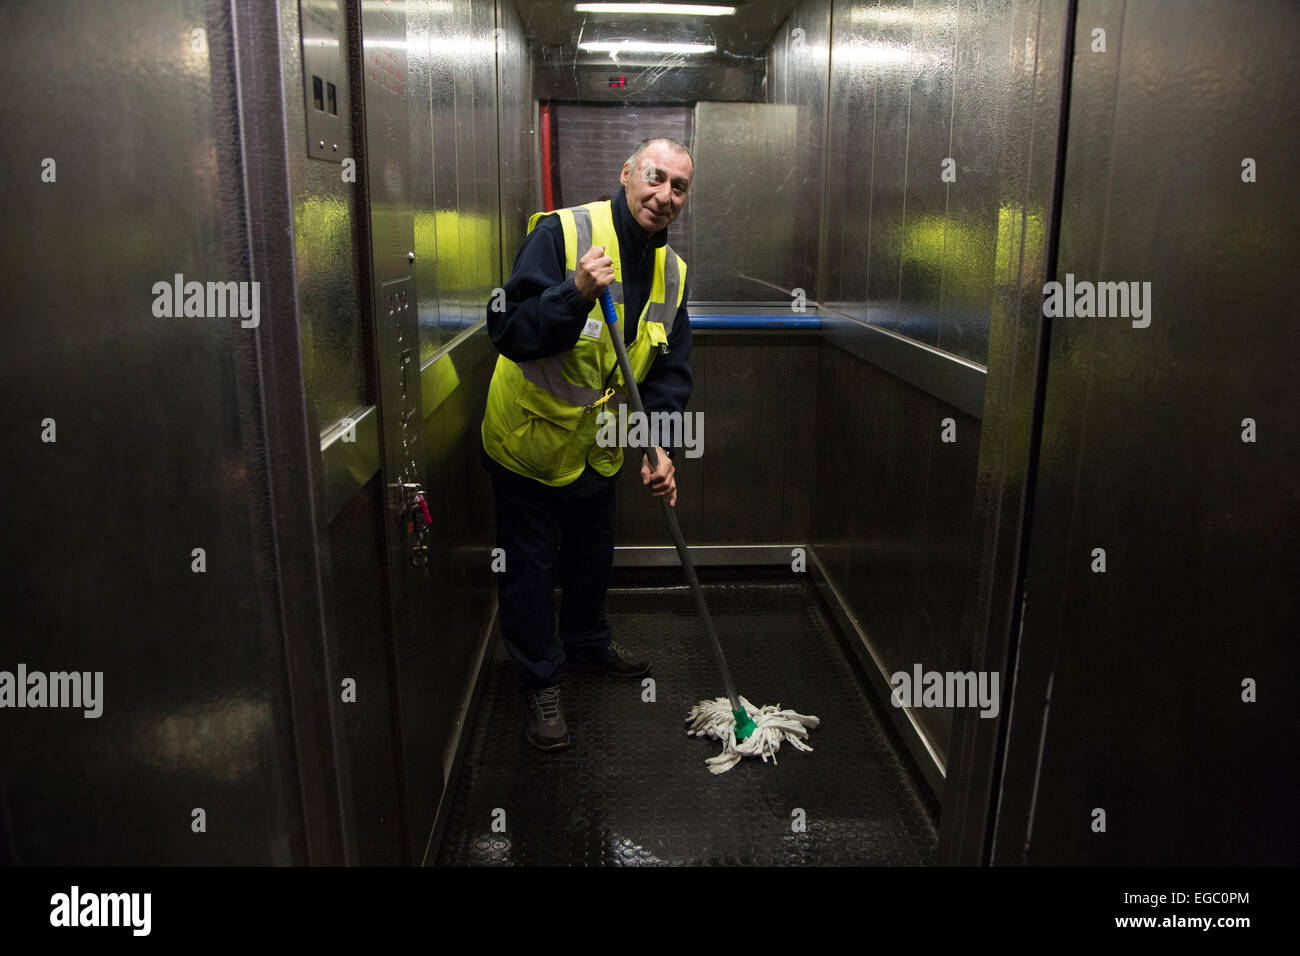 Man mopping the floor of a lift or elevator in a block of London flats - Stock Image